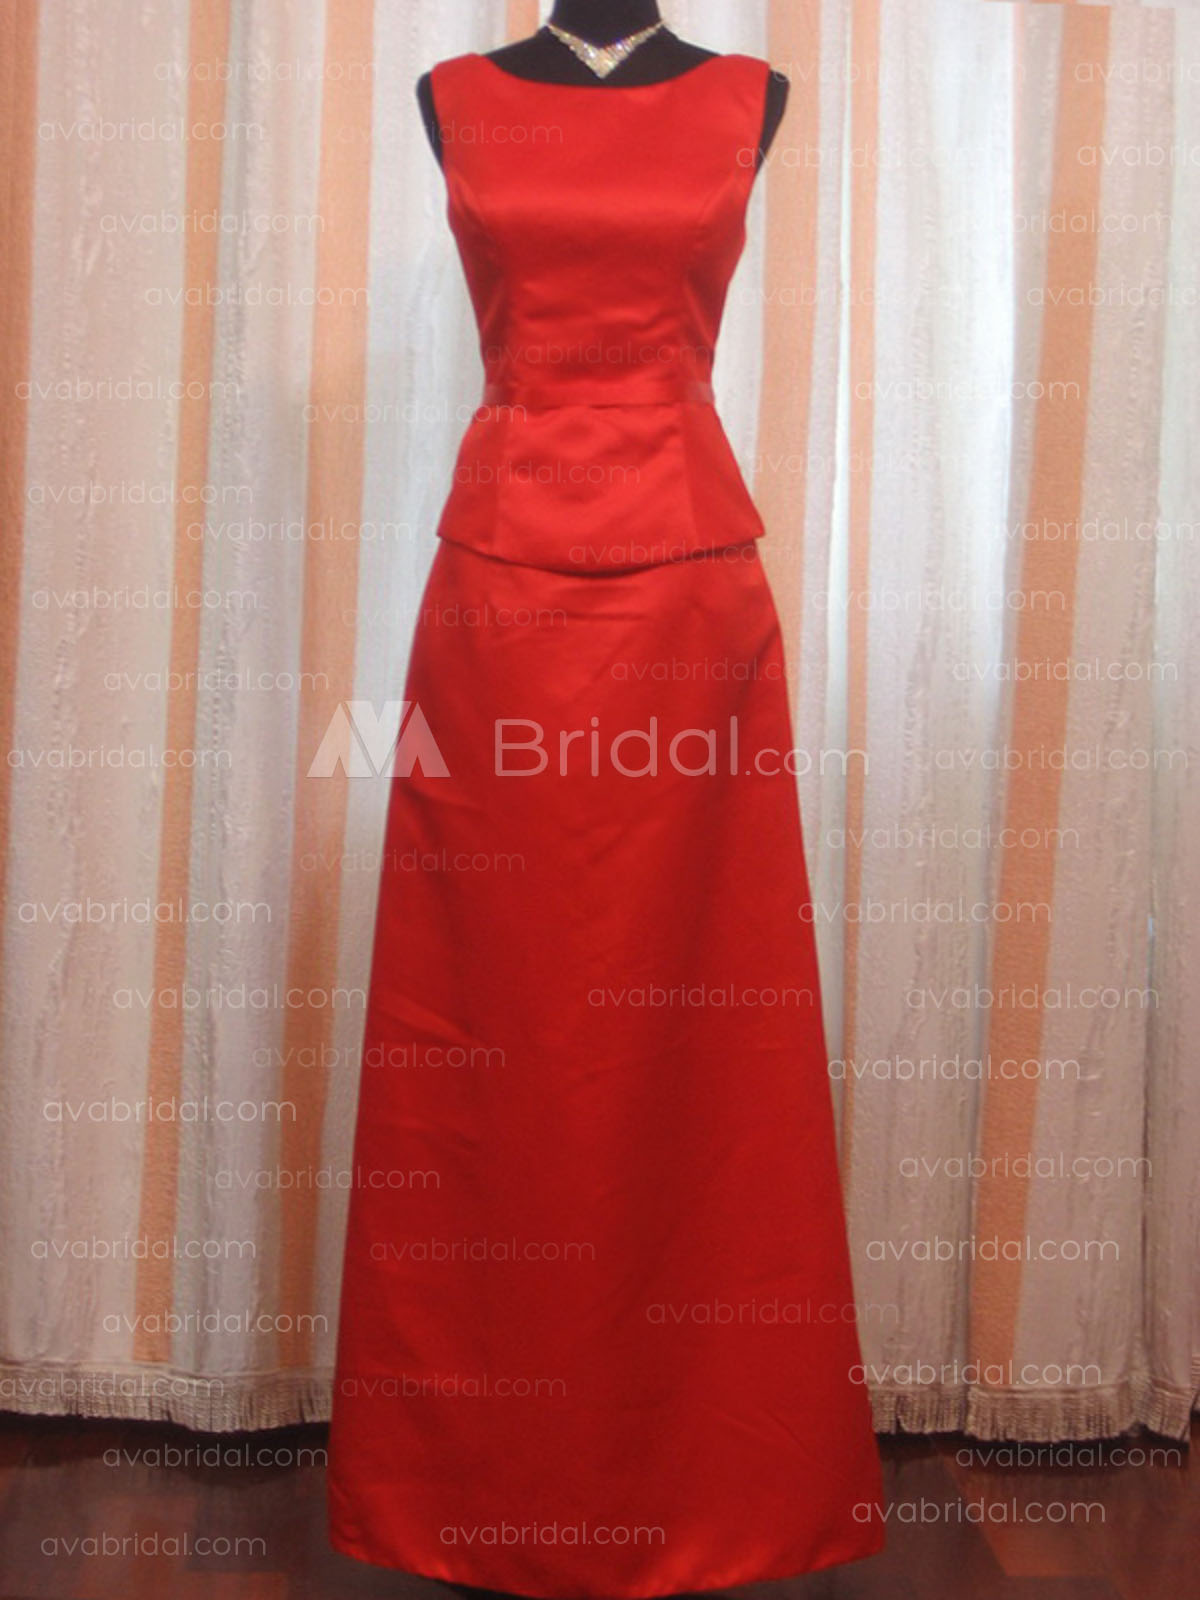 A-line Bateau Neckline Satin Bridesmaid Dress B121 -Front